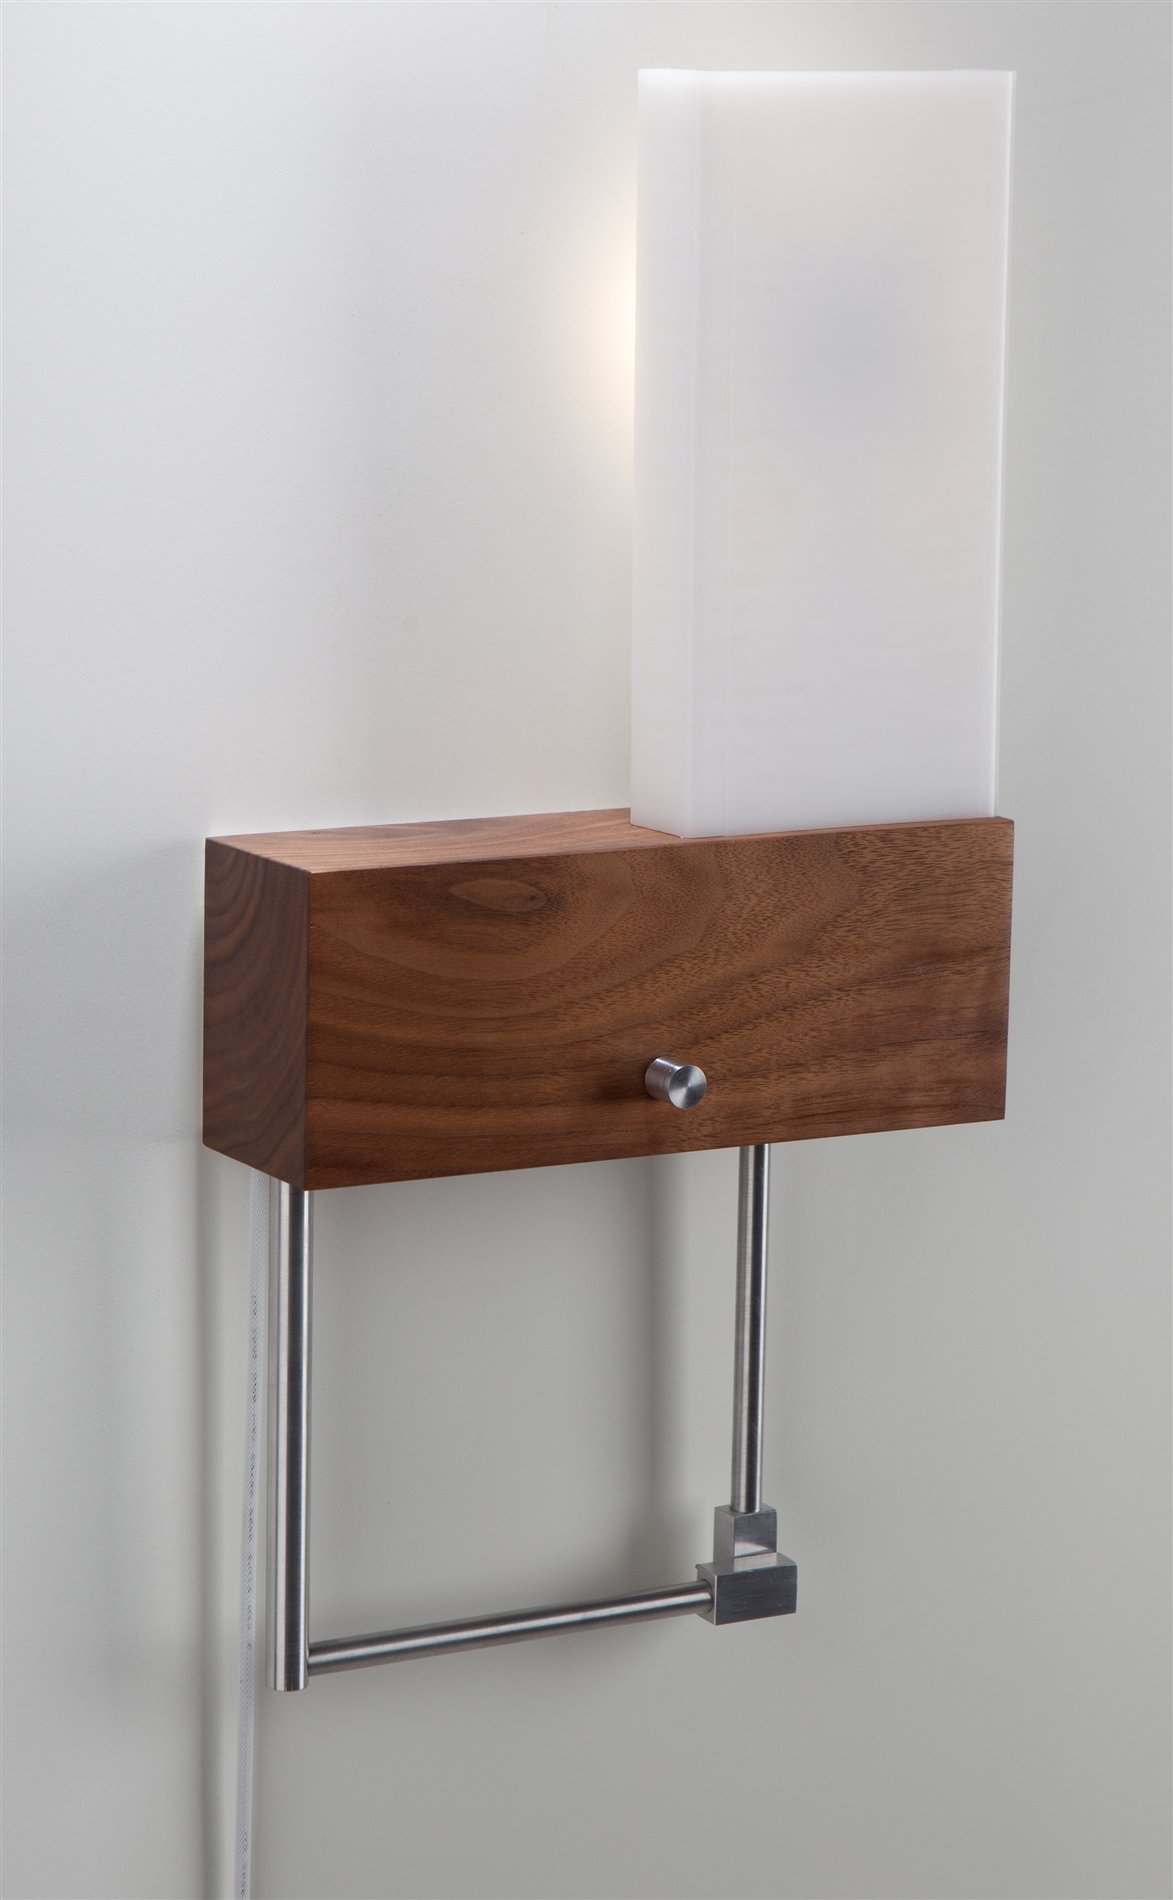 Nick Sheridan 03-110-RC Cubo LED Contemporary Wall Sconce / Reading Light - Plug-In Cord (Right ...